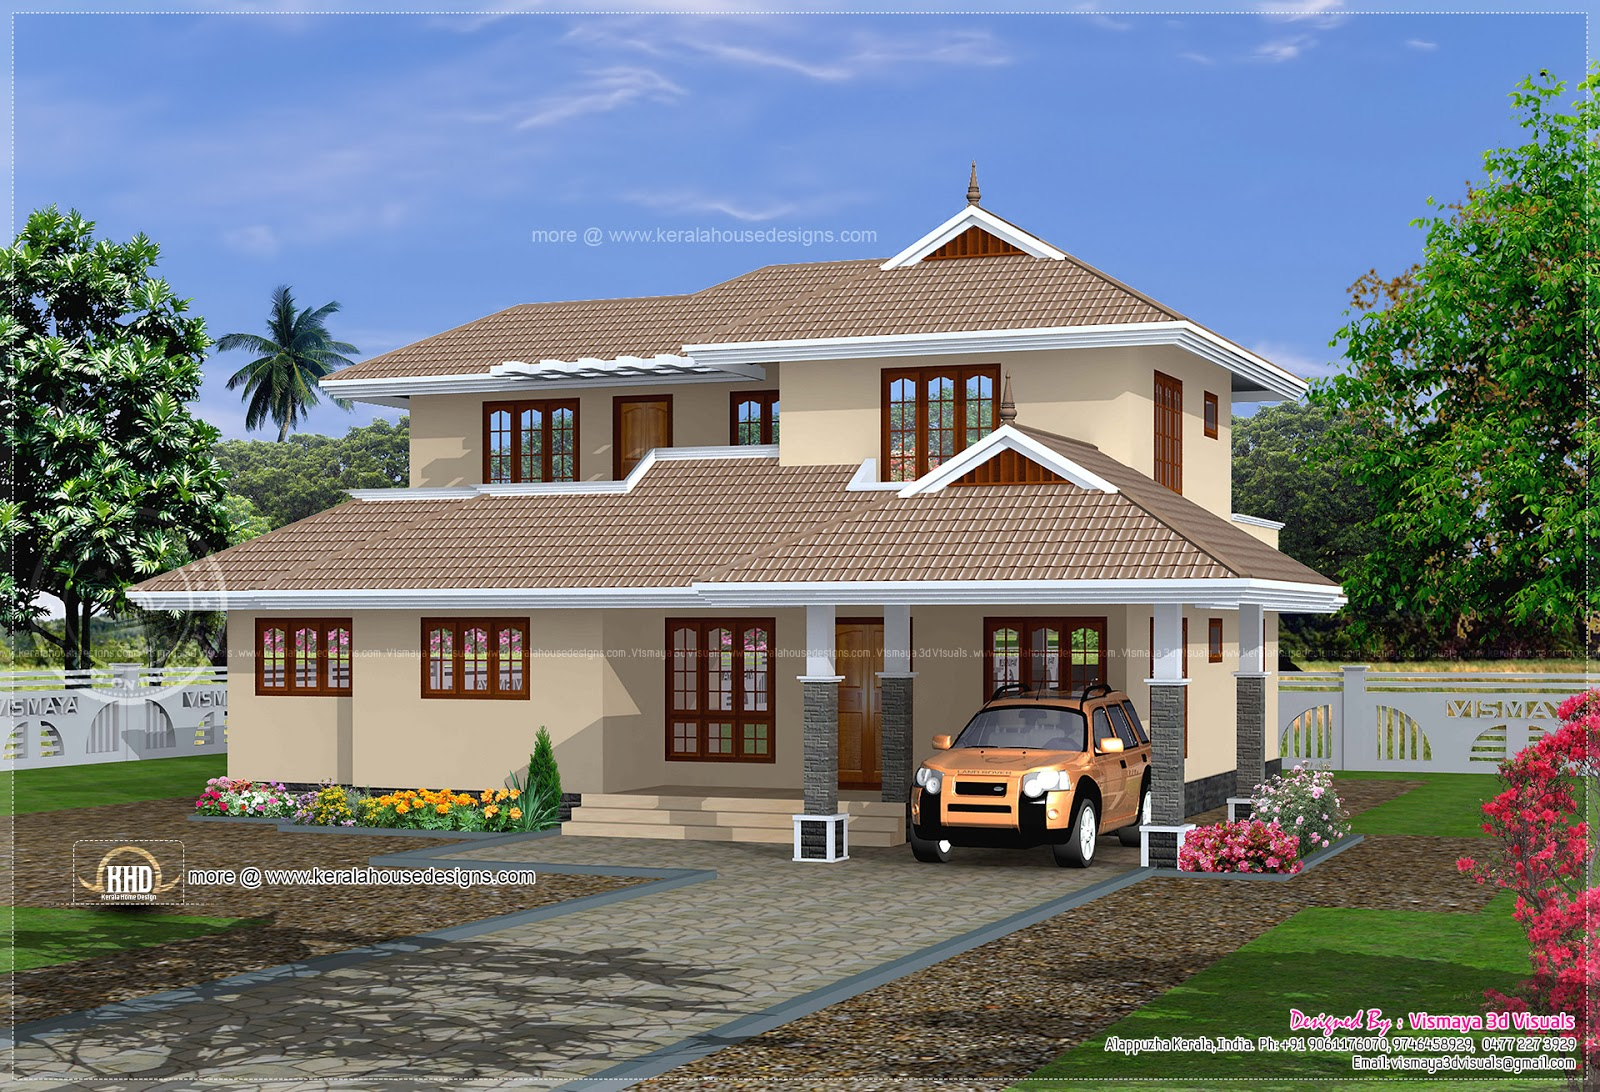 February 2014 house design plans for Simple house plans